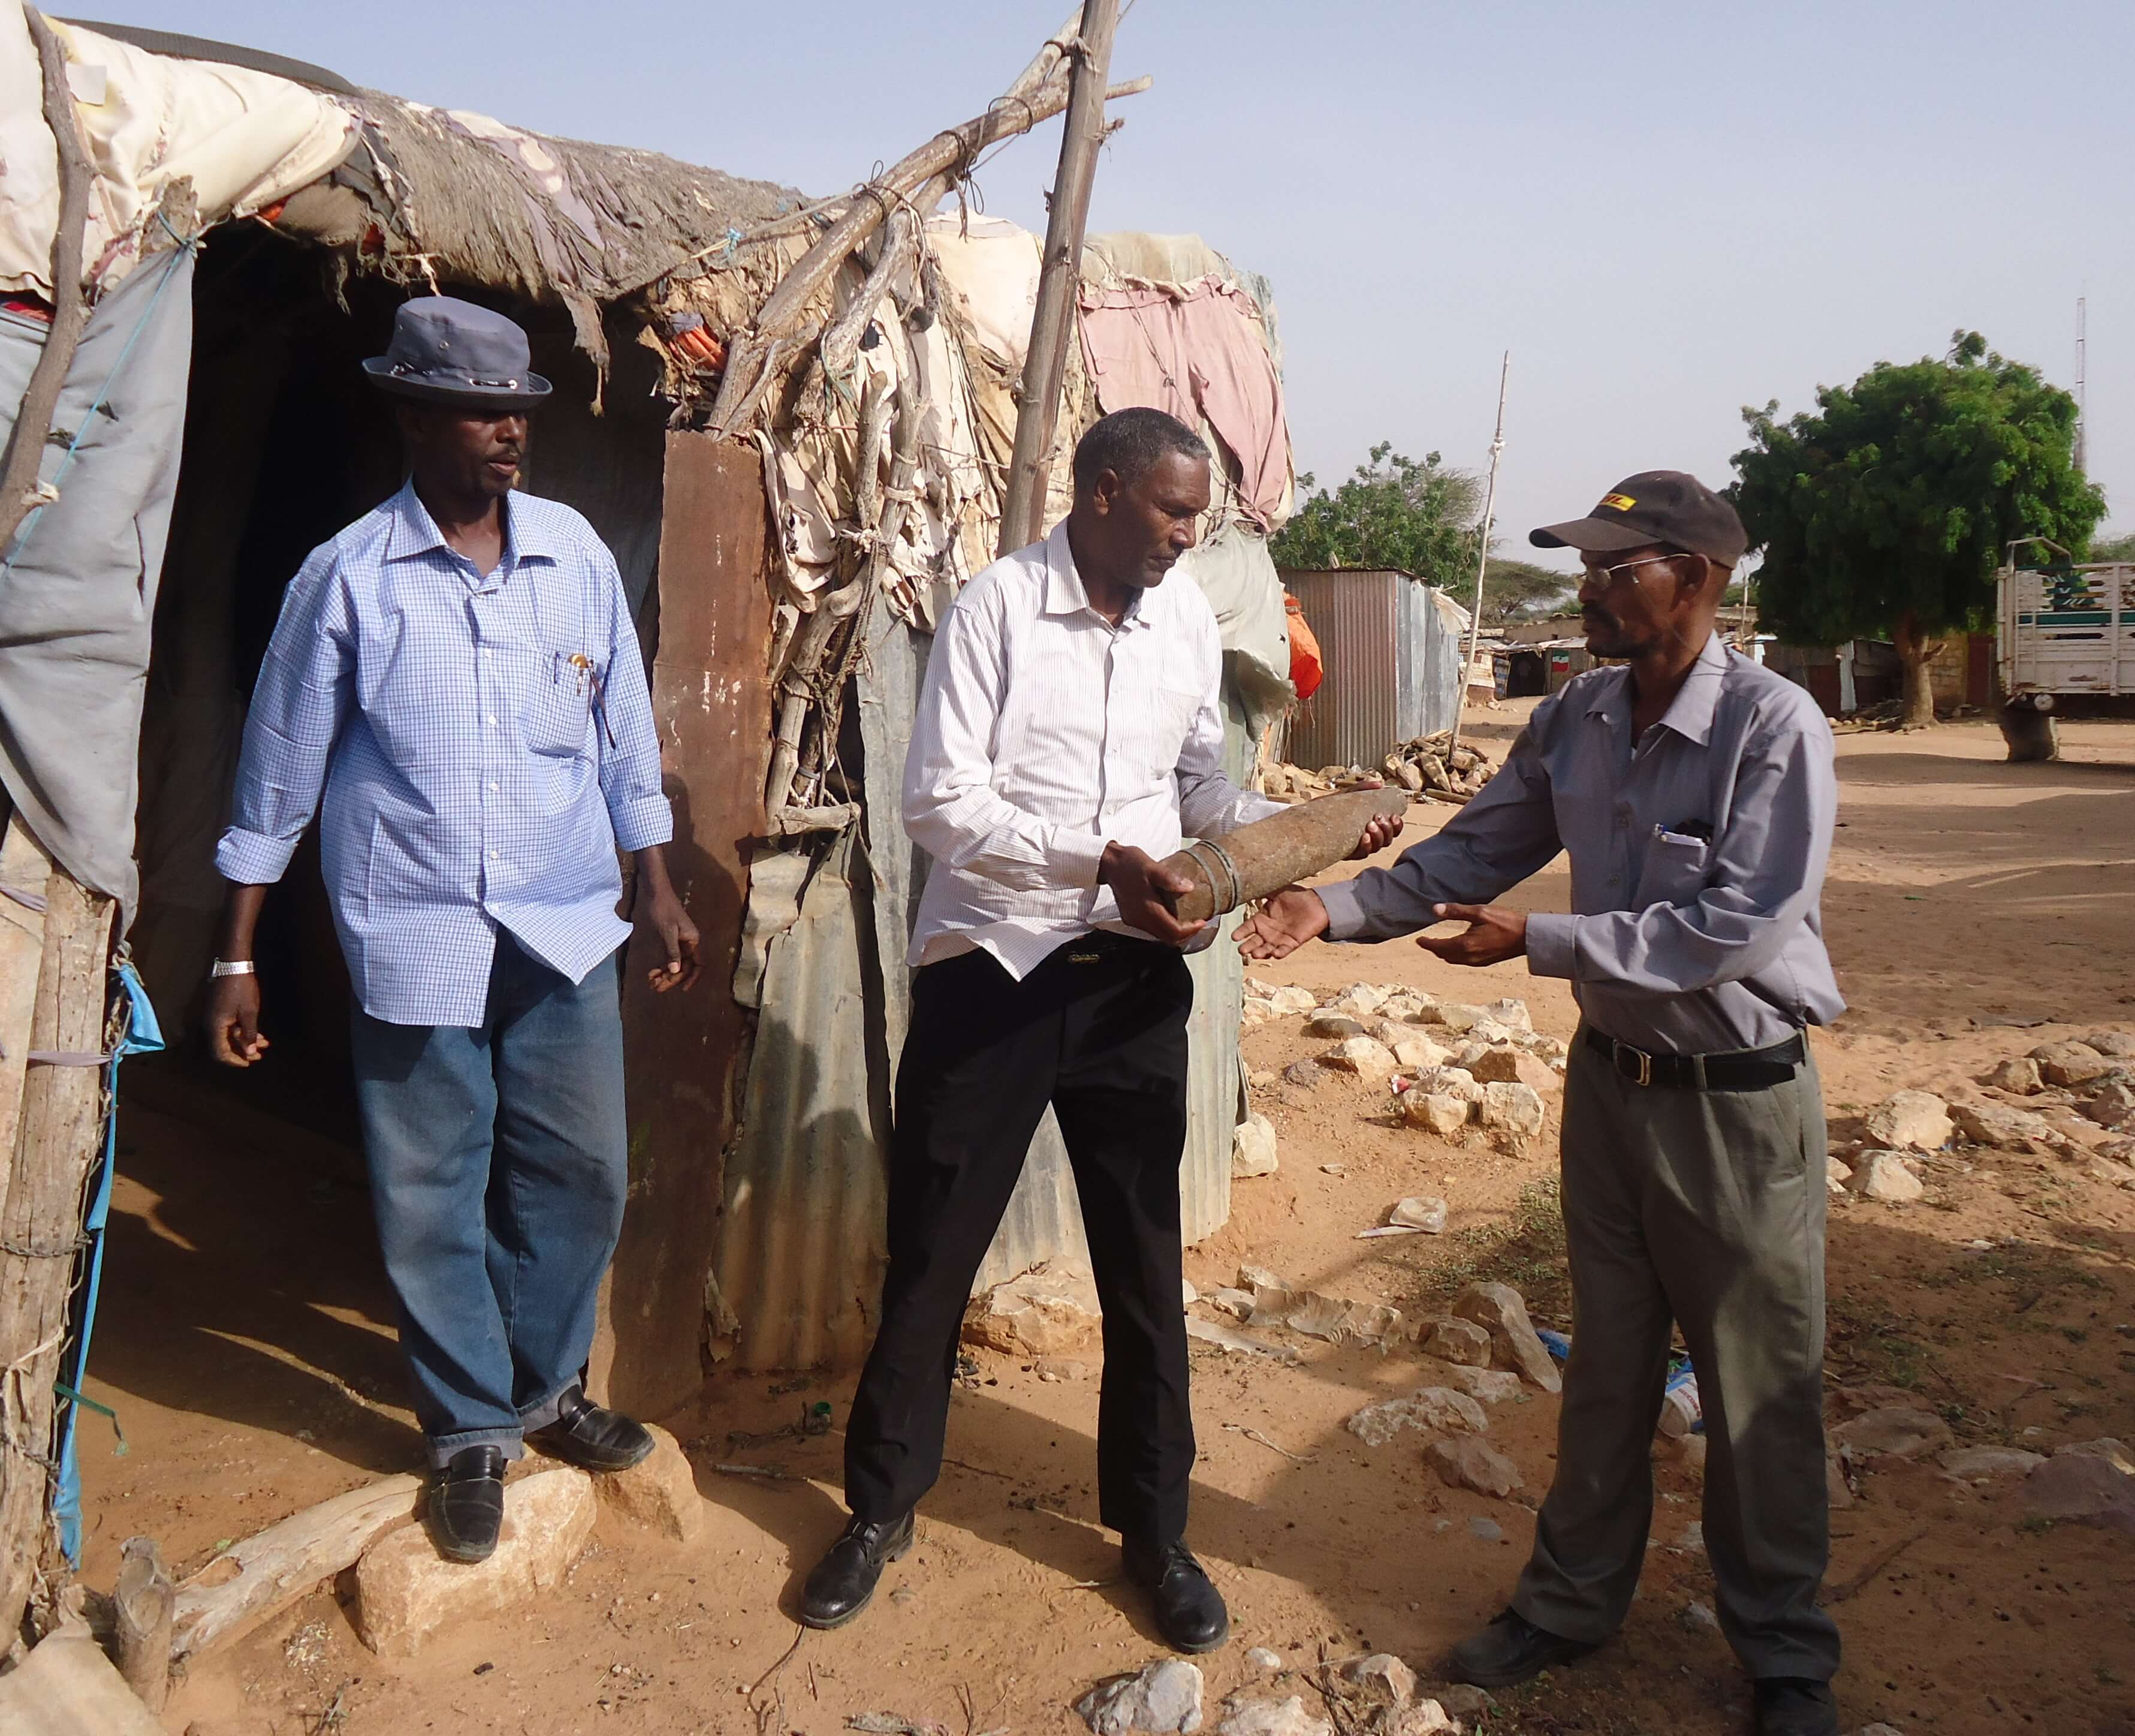 Somaliland: Disarmed ordnance remnants are removed from a private home